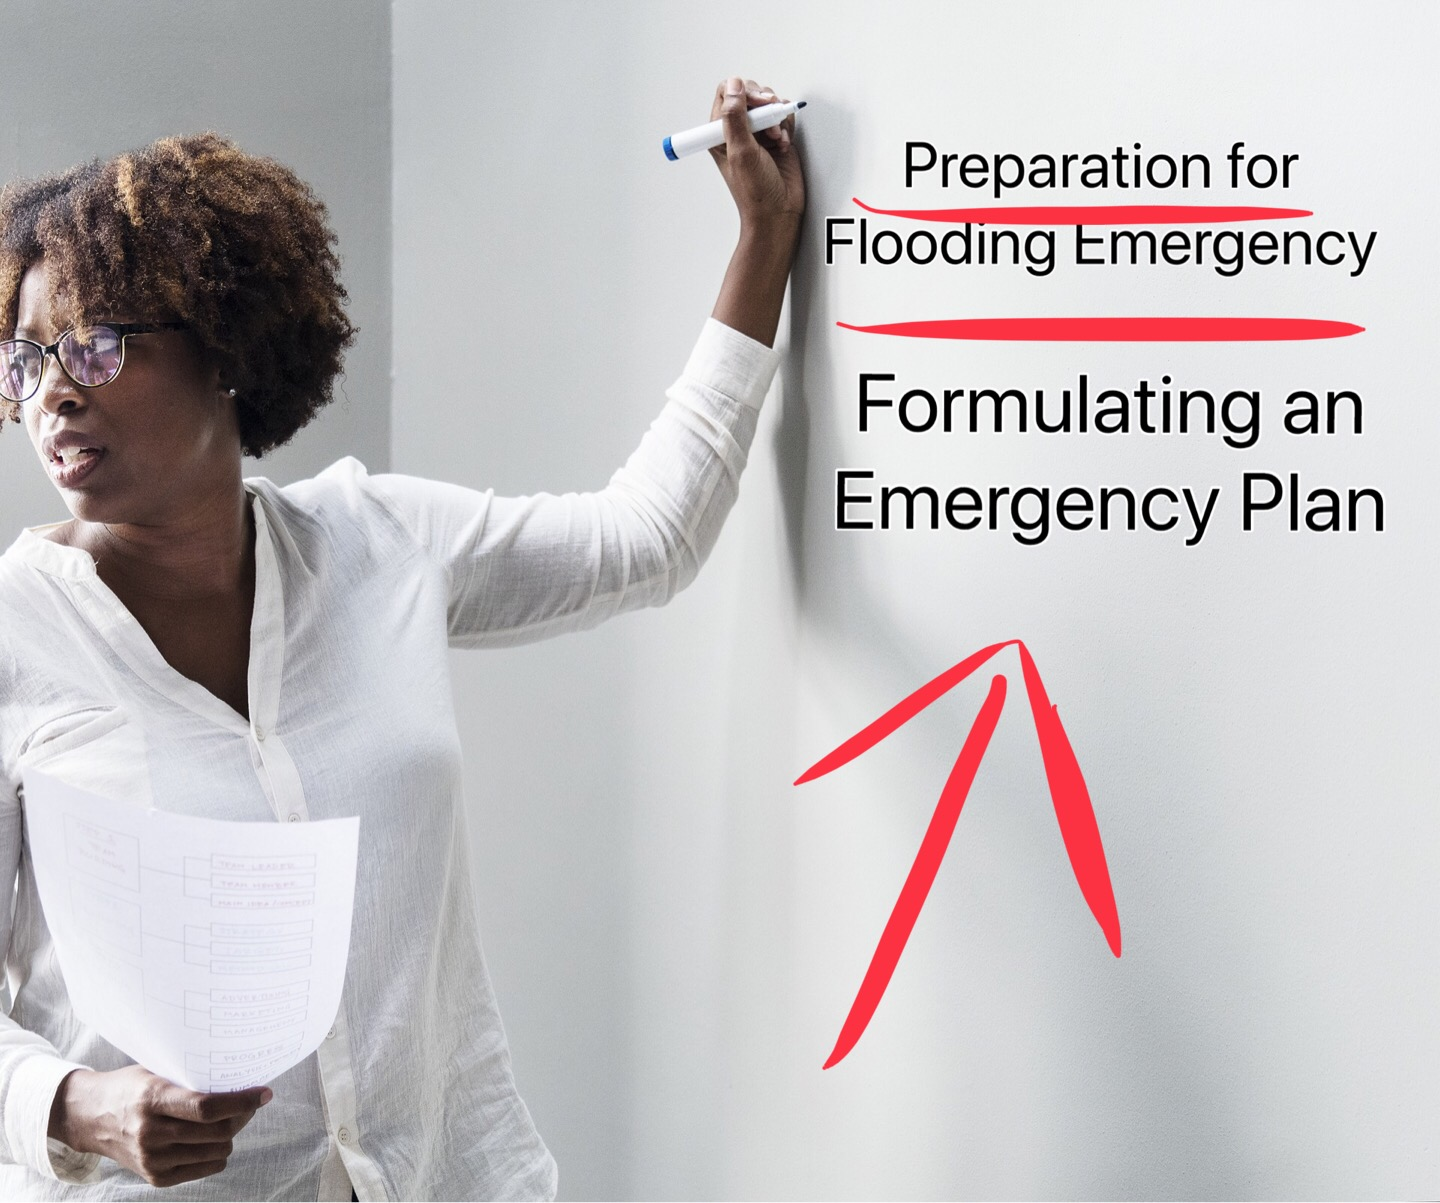 Step 2: Formulating an Emergency Plan